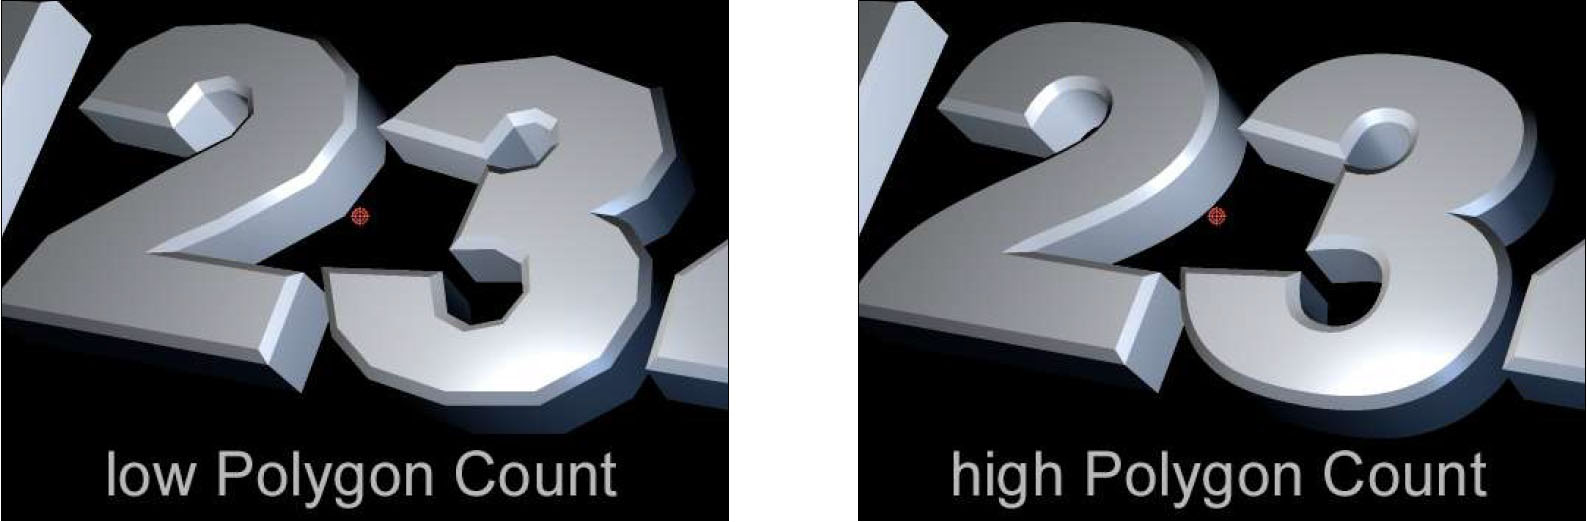 Extruded Text 6.1